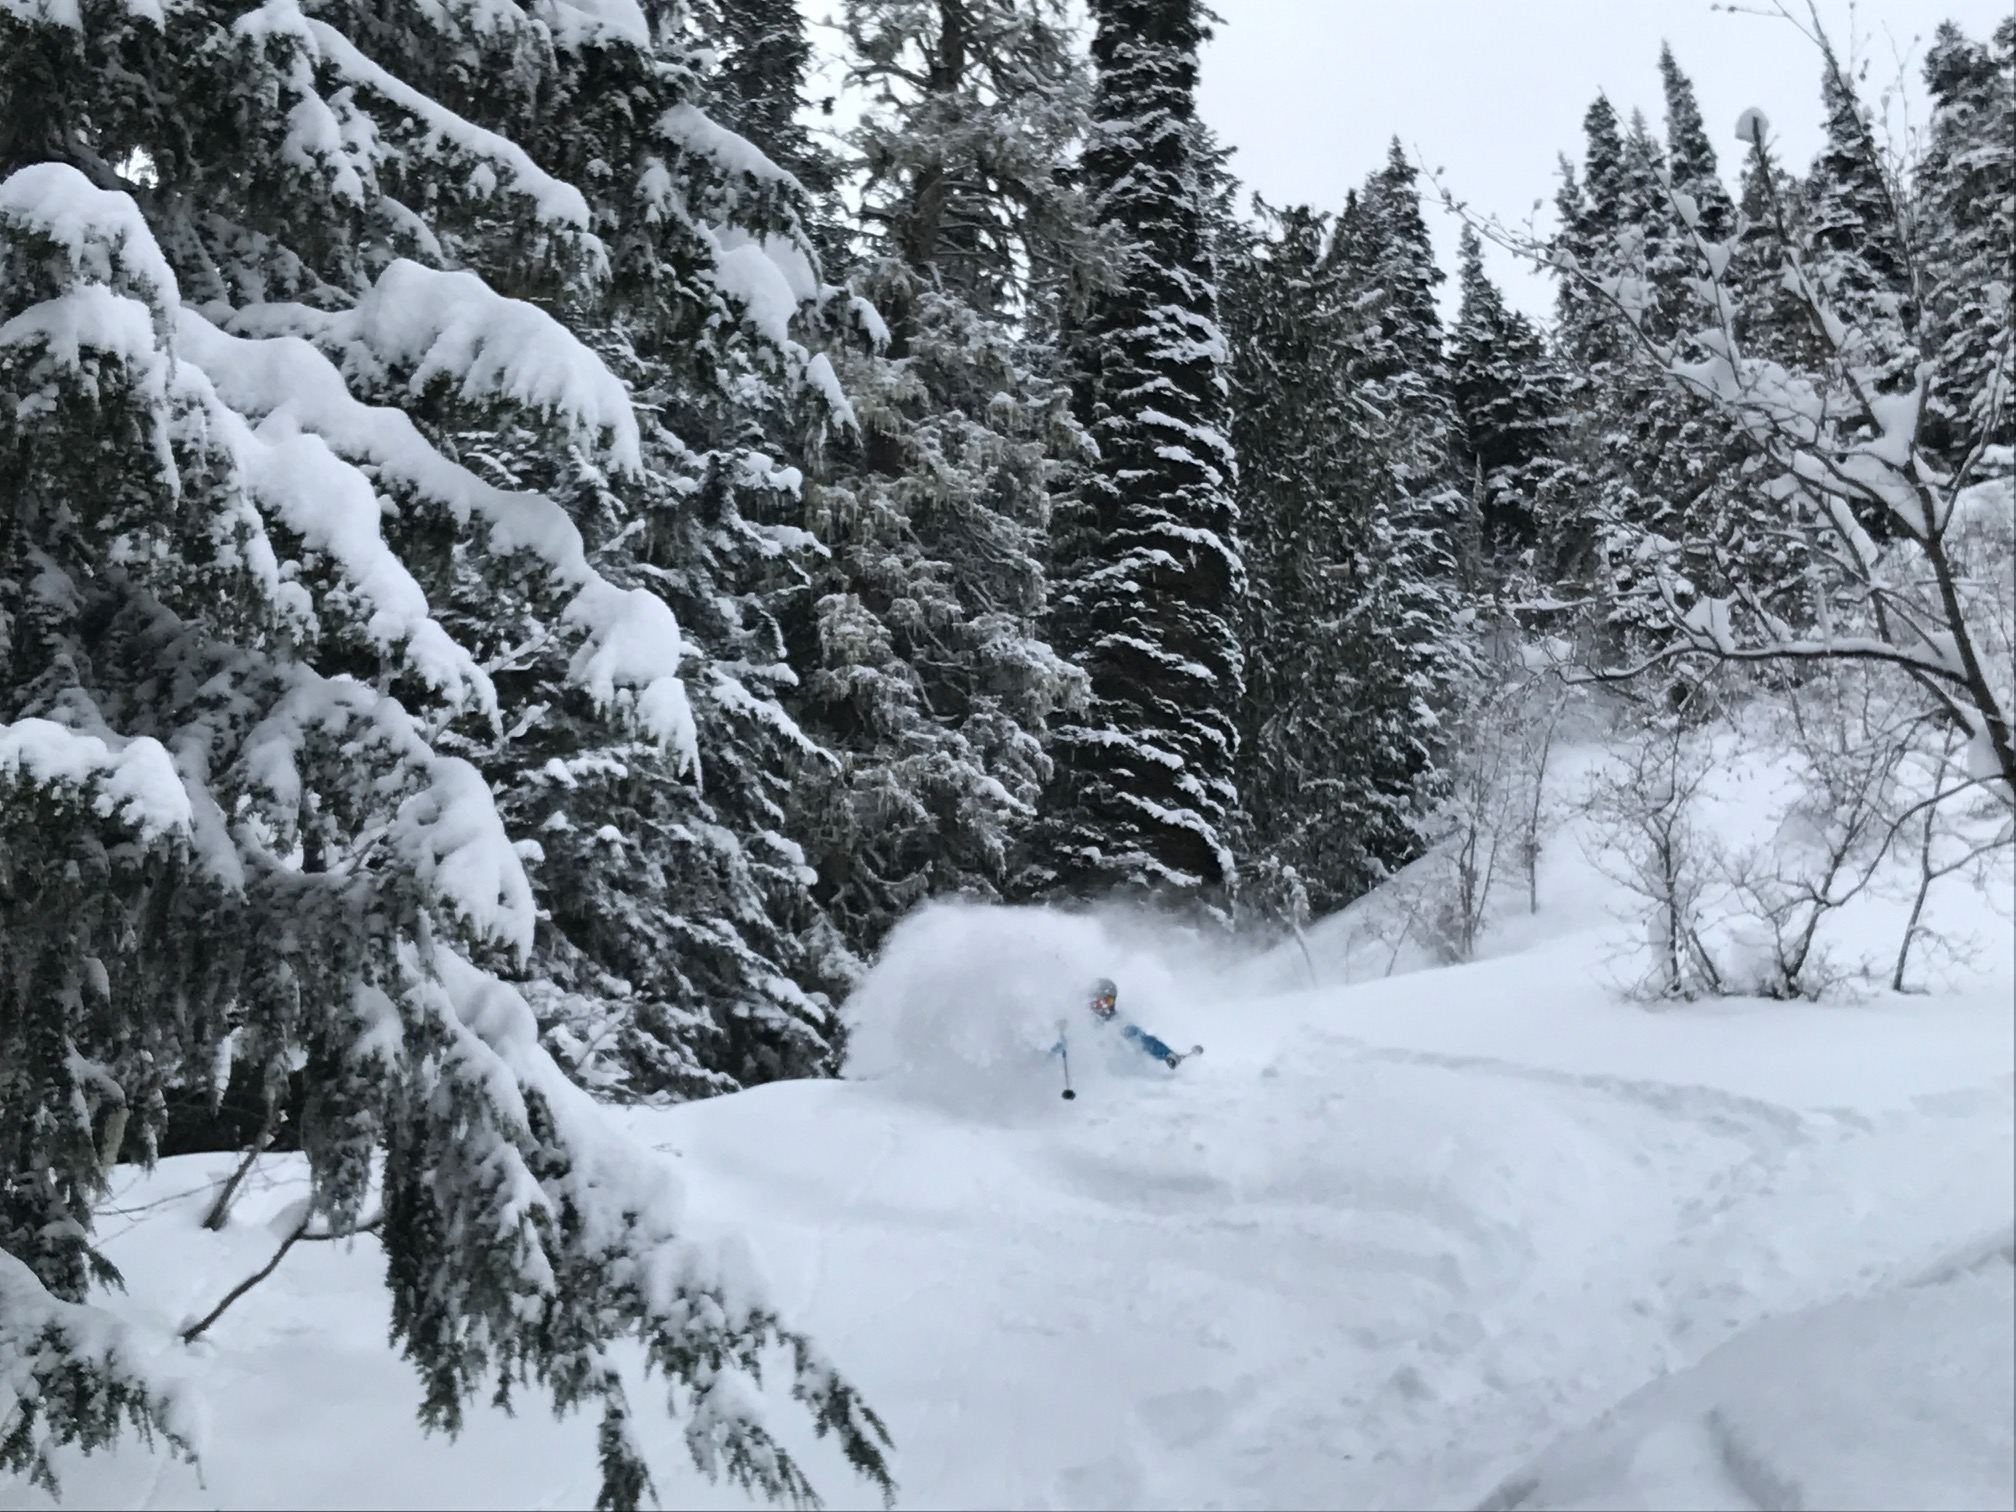 Welcoming in March with 45cm of cold blower overnight in Whistler!